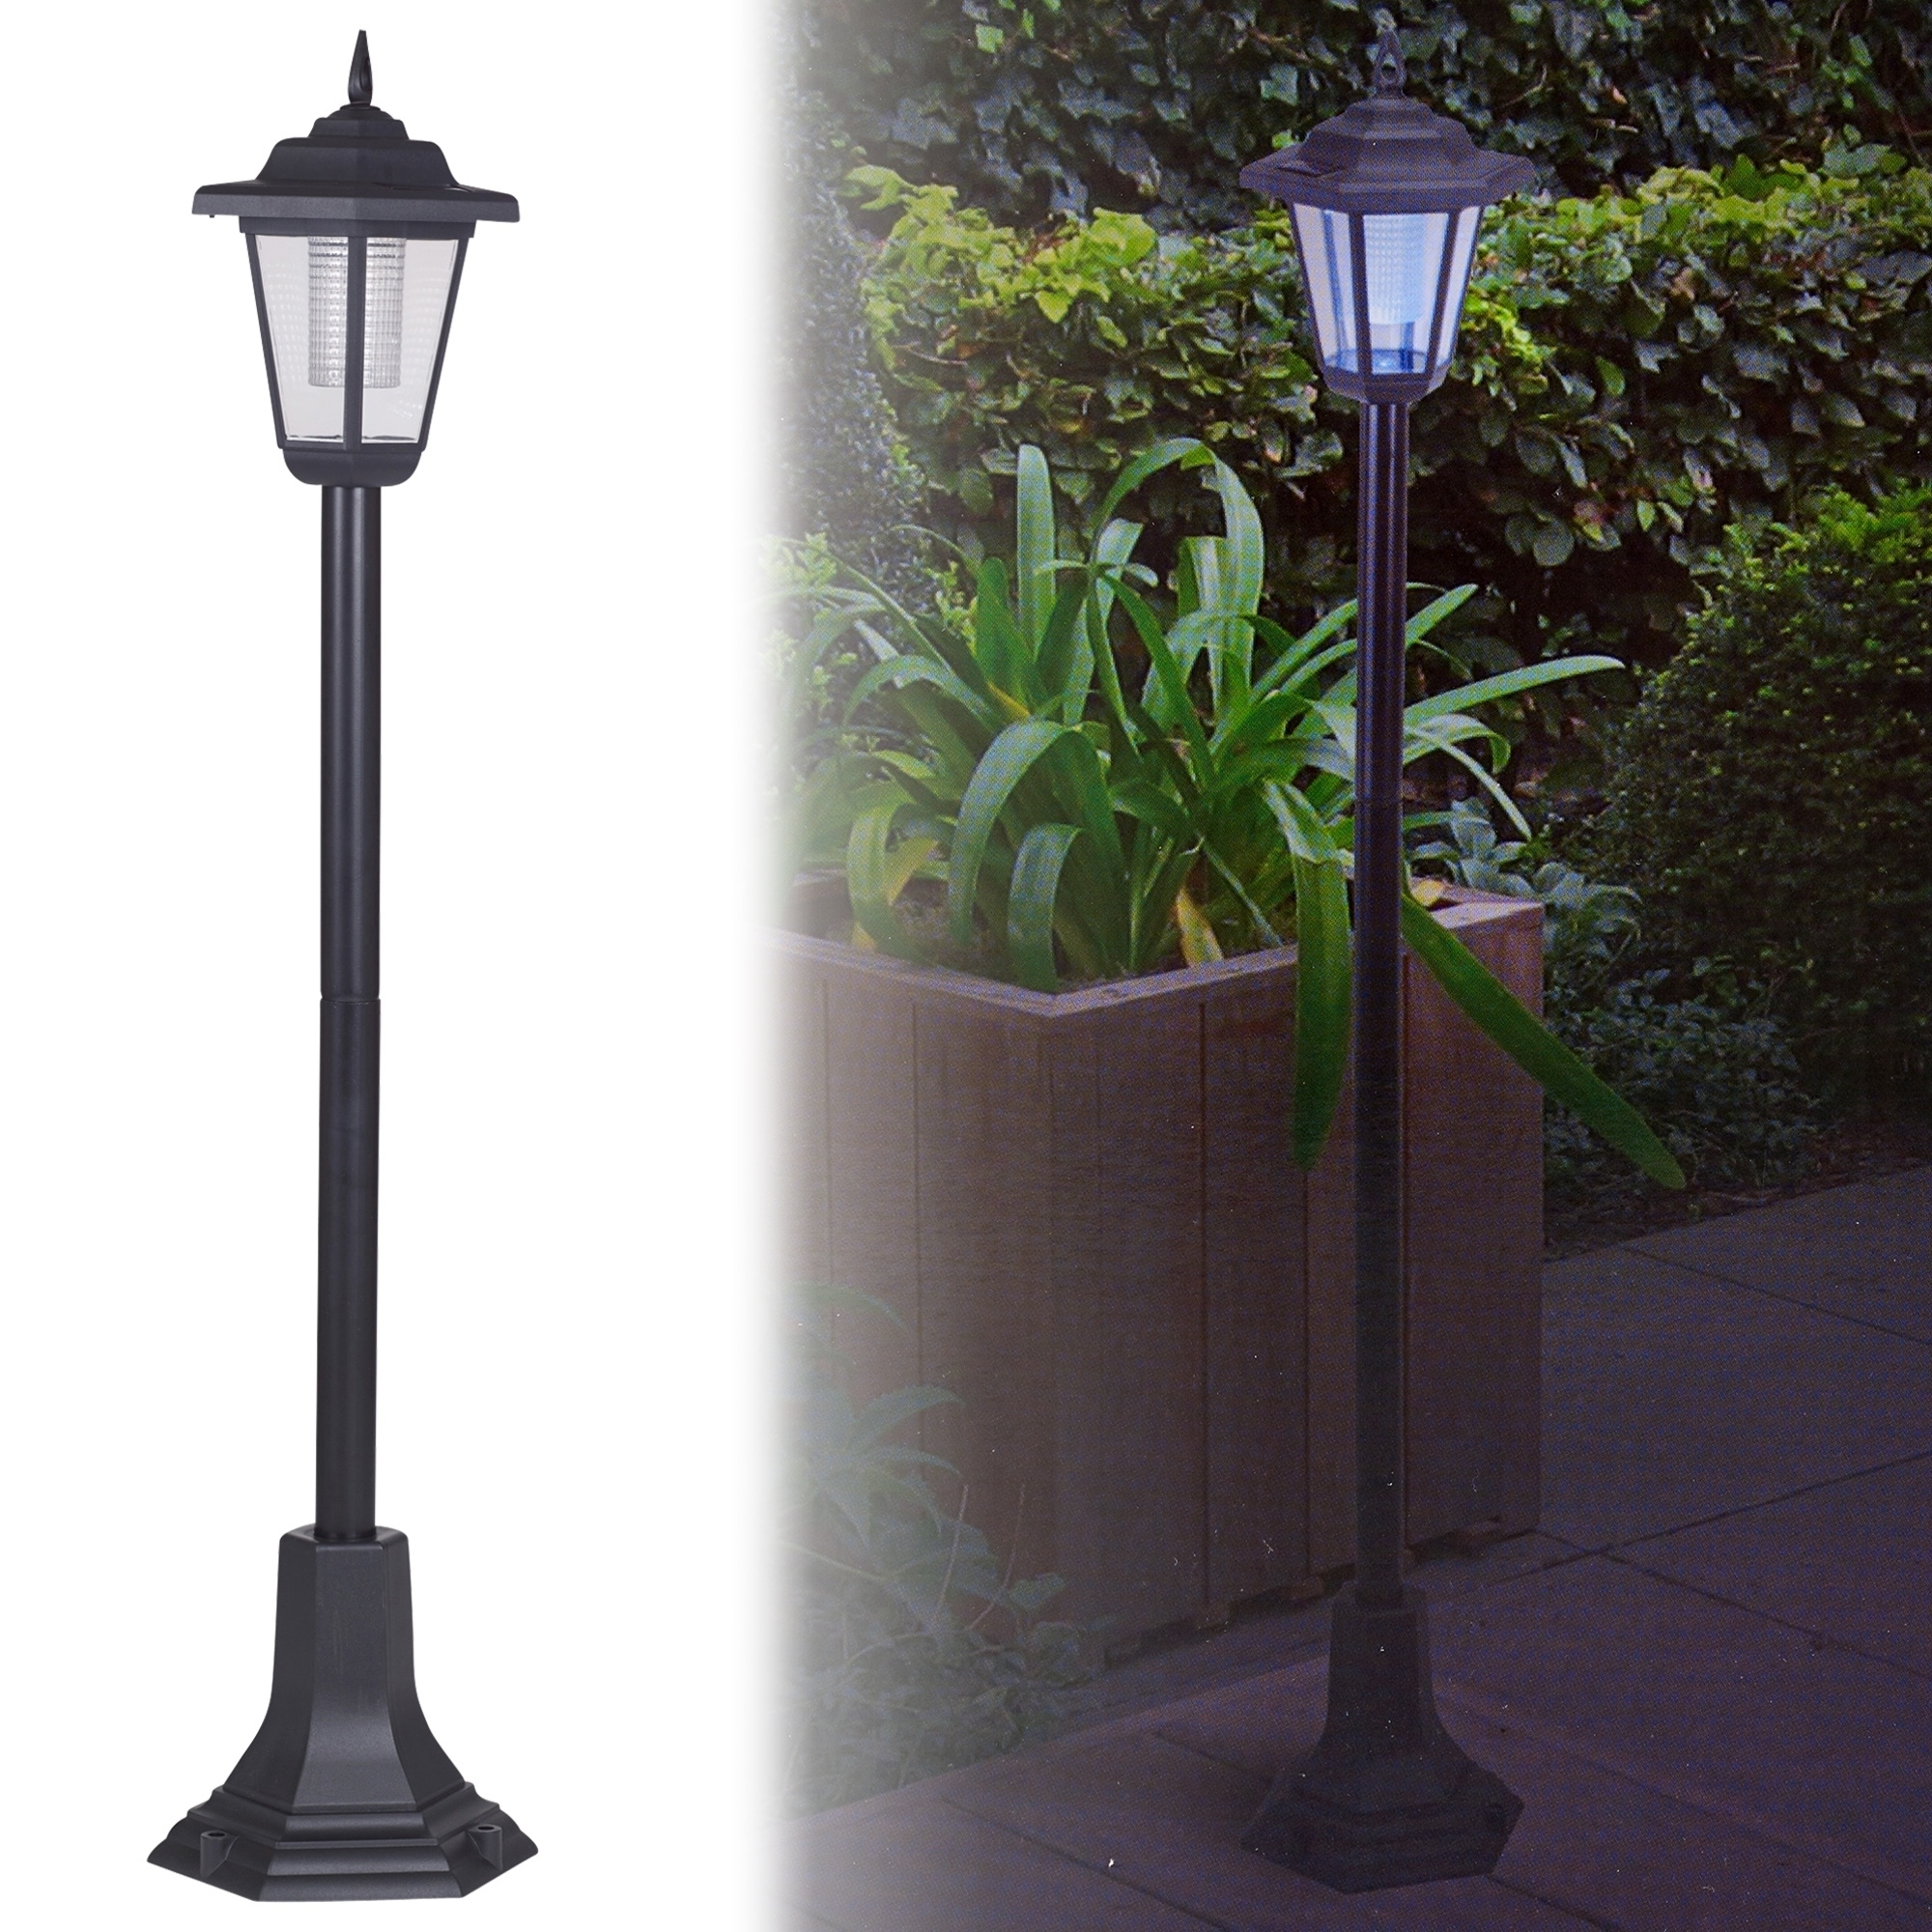 Outdoor Standing Lanterns Intended For Most Up To Date Solar Powered Garden Lights Lantern Lamp Black Led Pathway Driveway (View 12 of 20)